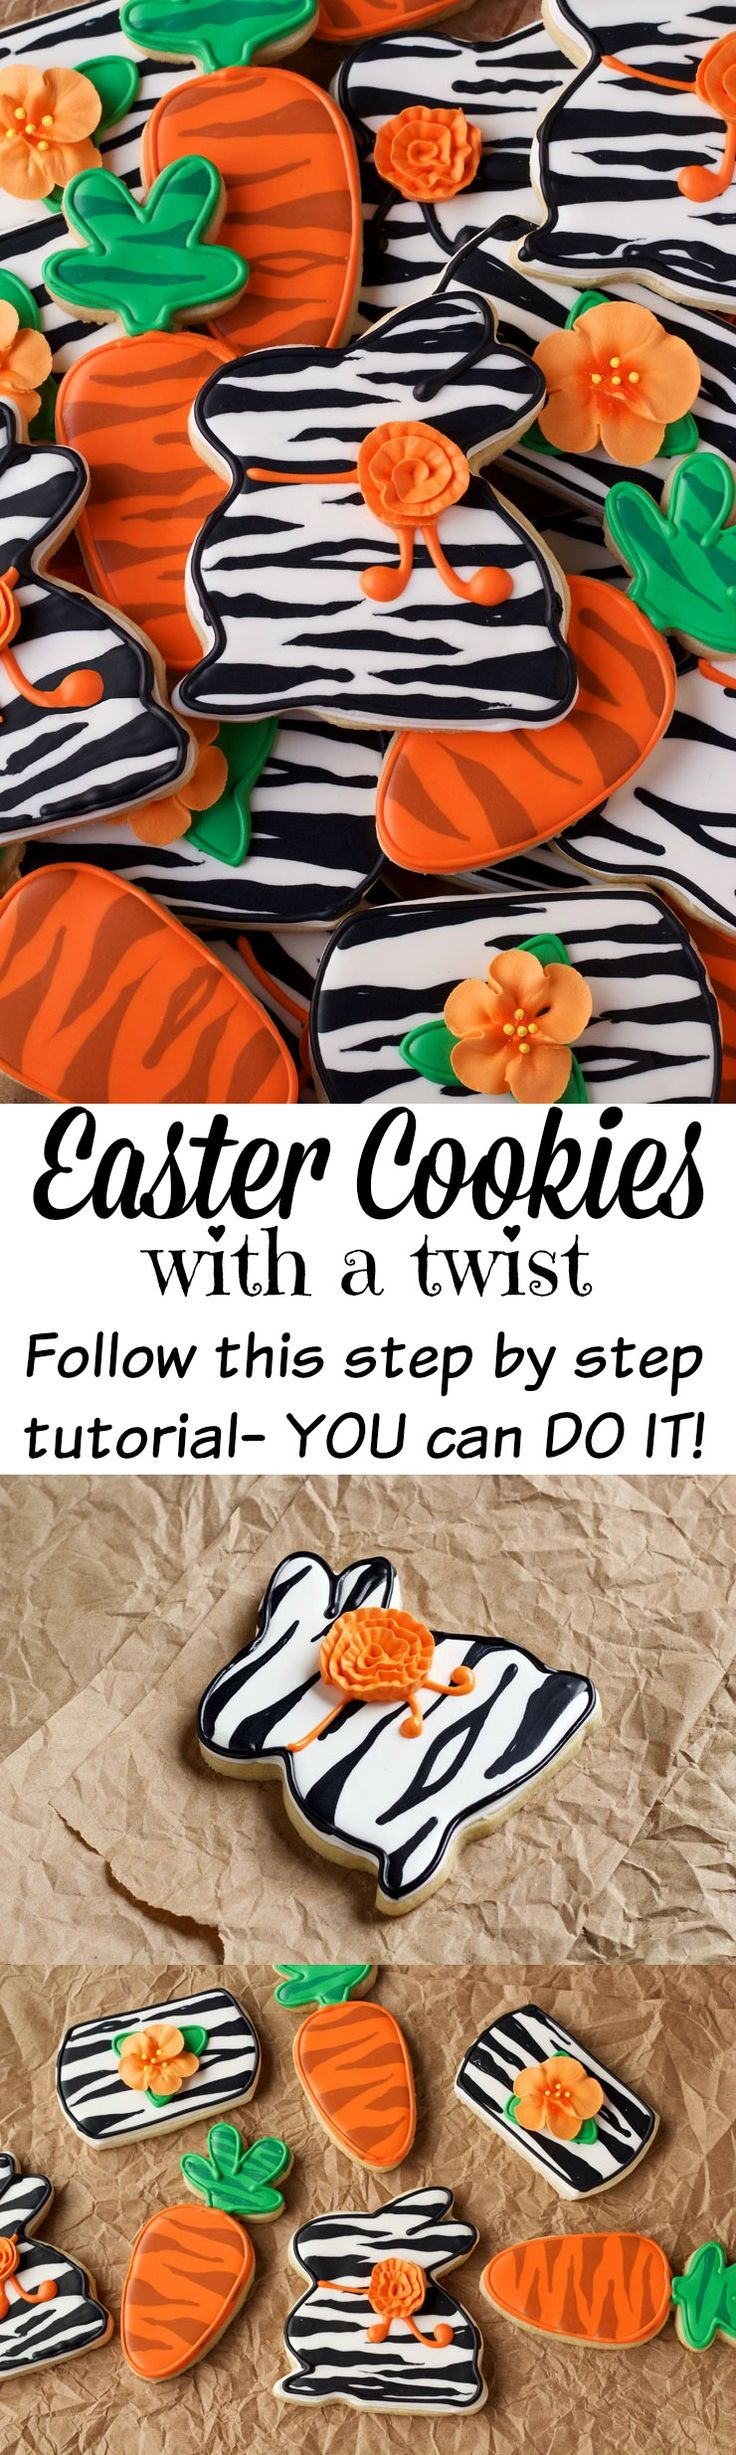 Easter Cookies with a Twist-Sugar Cookies Decorated with Royal Icing www.thebearfootbaker.com